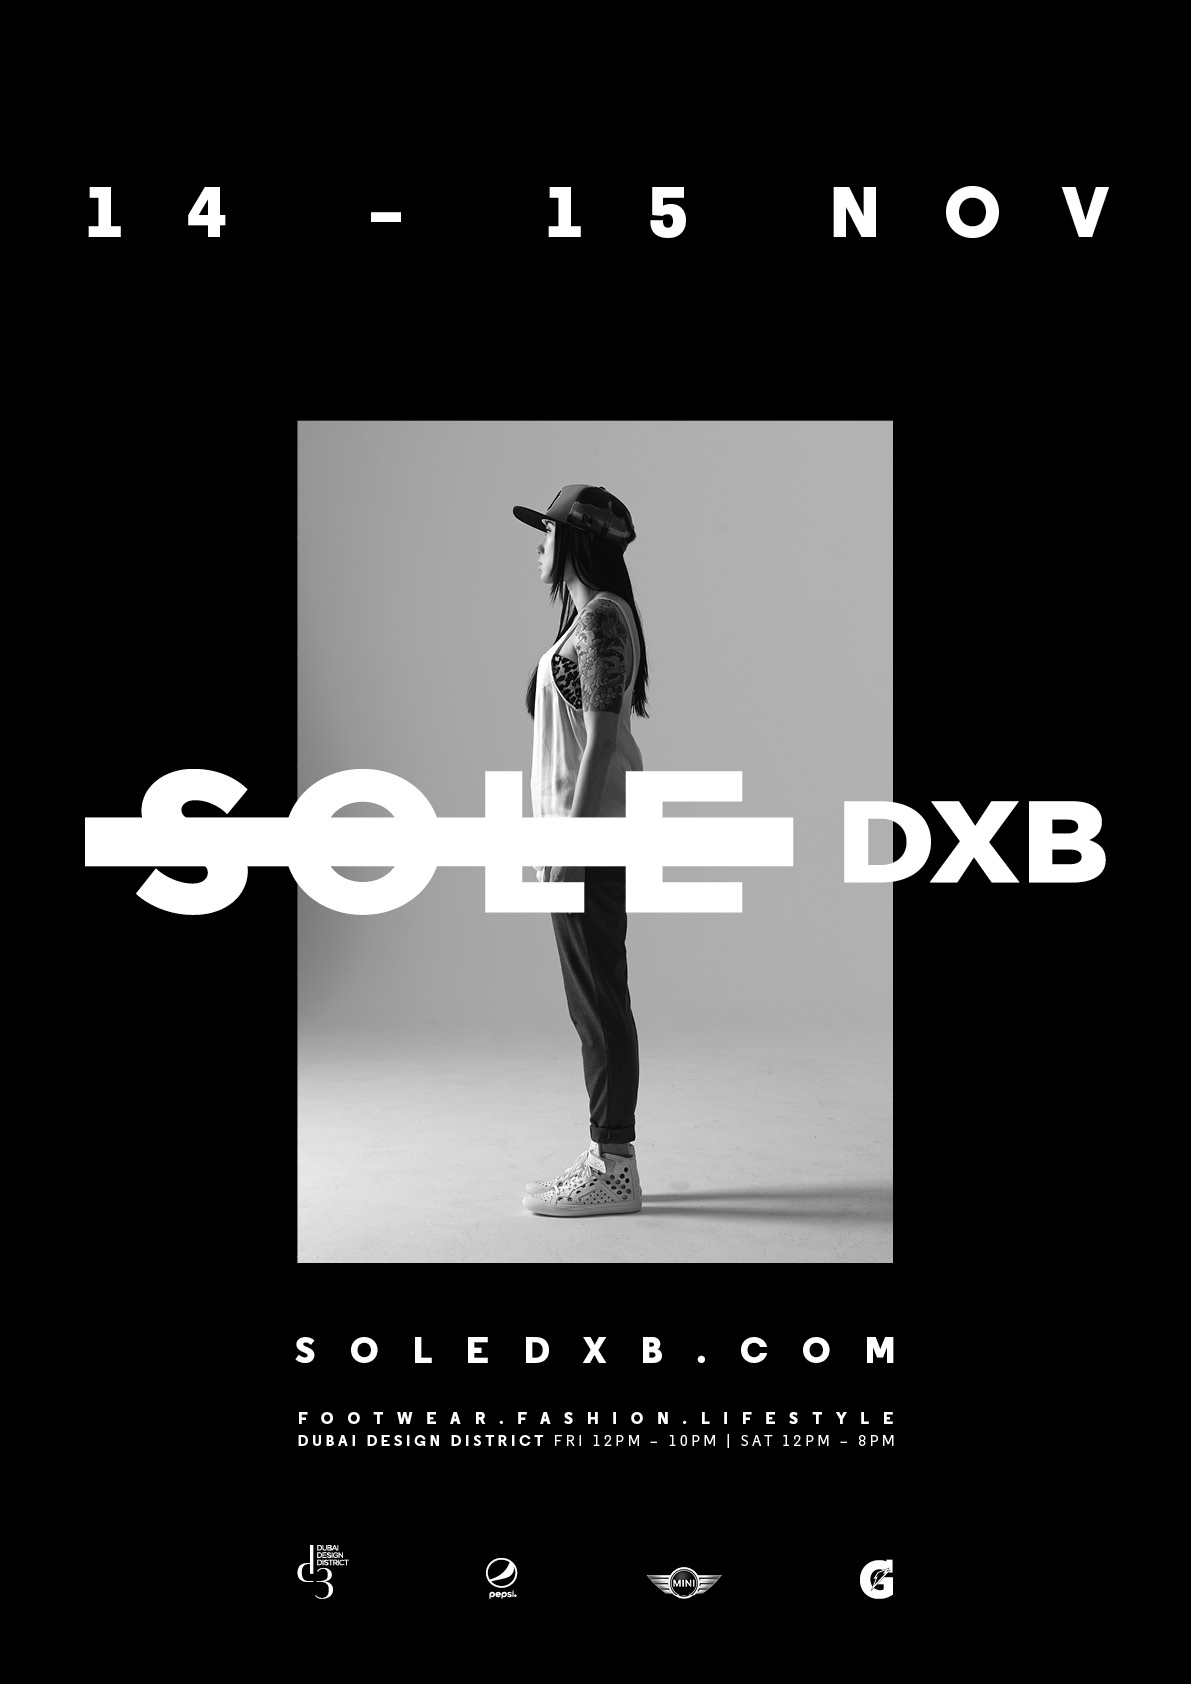 Sole DXB 2014 Event Poster Woman